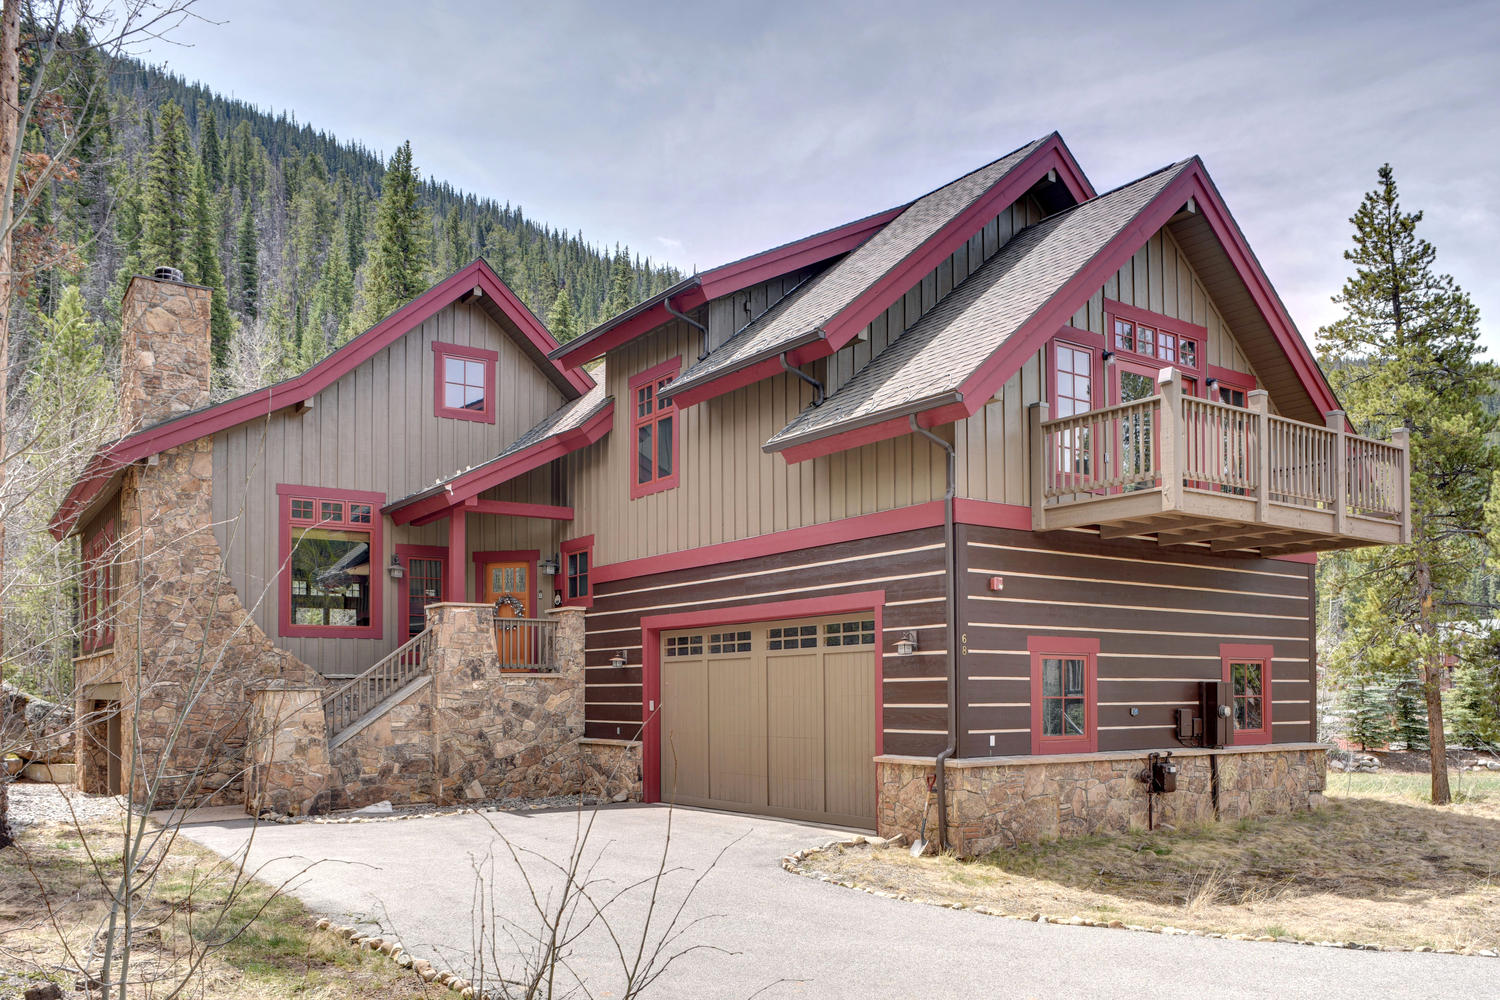 Single Family Home for Sale at 68 Wolf Rock 68 Wolf Rock Road Keystone, Colorado, 80435 United States